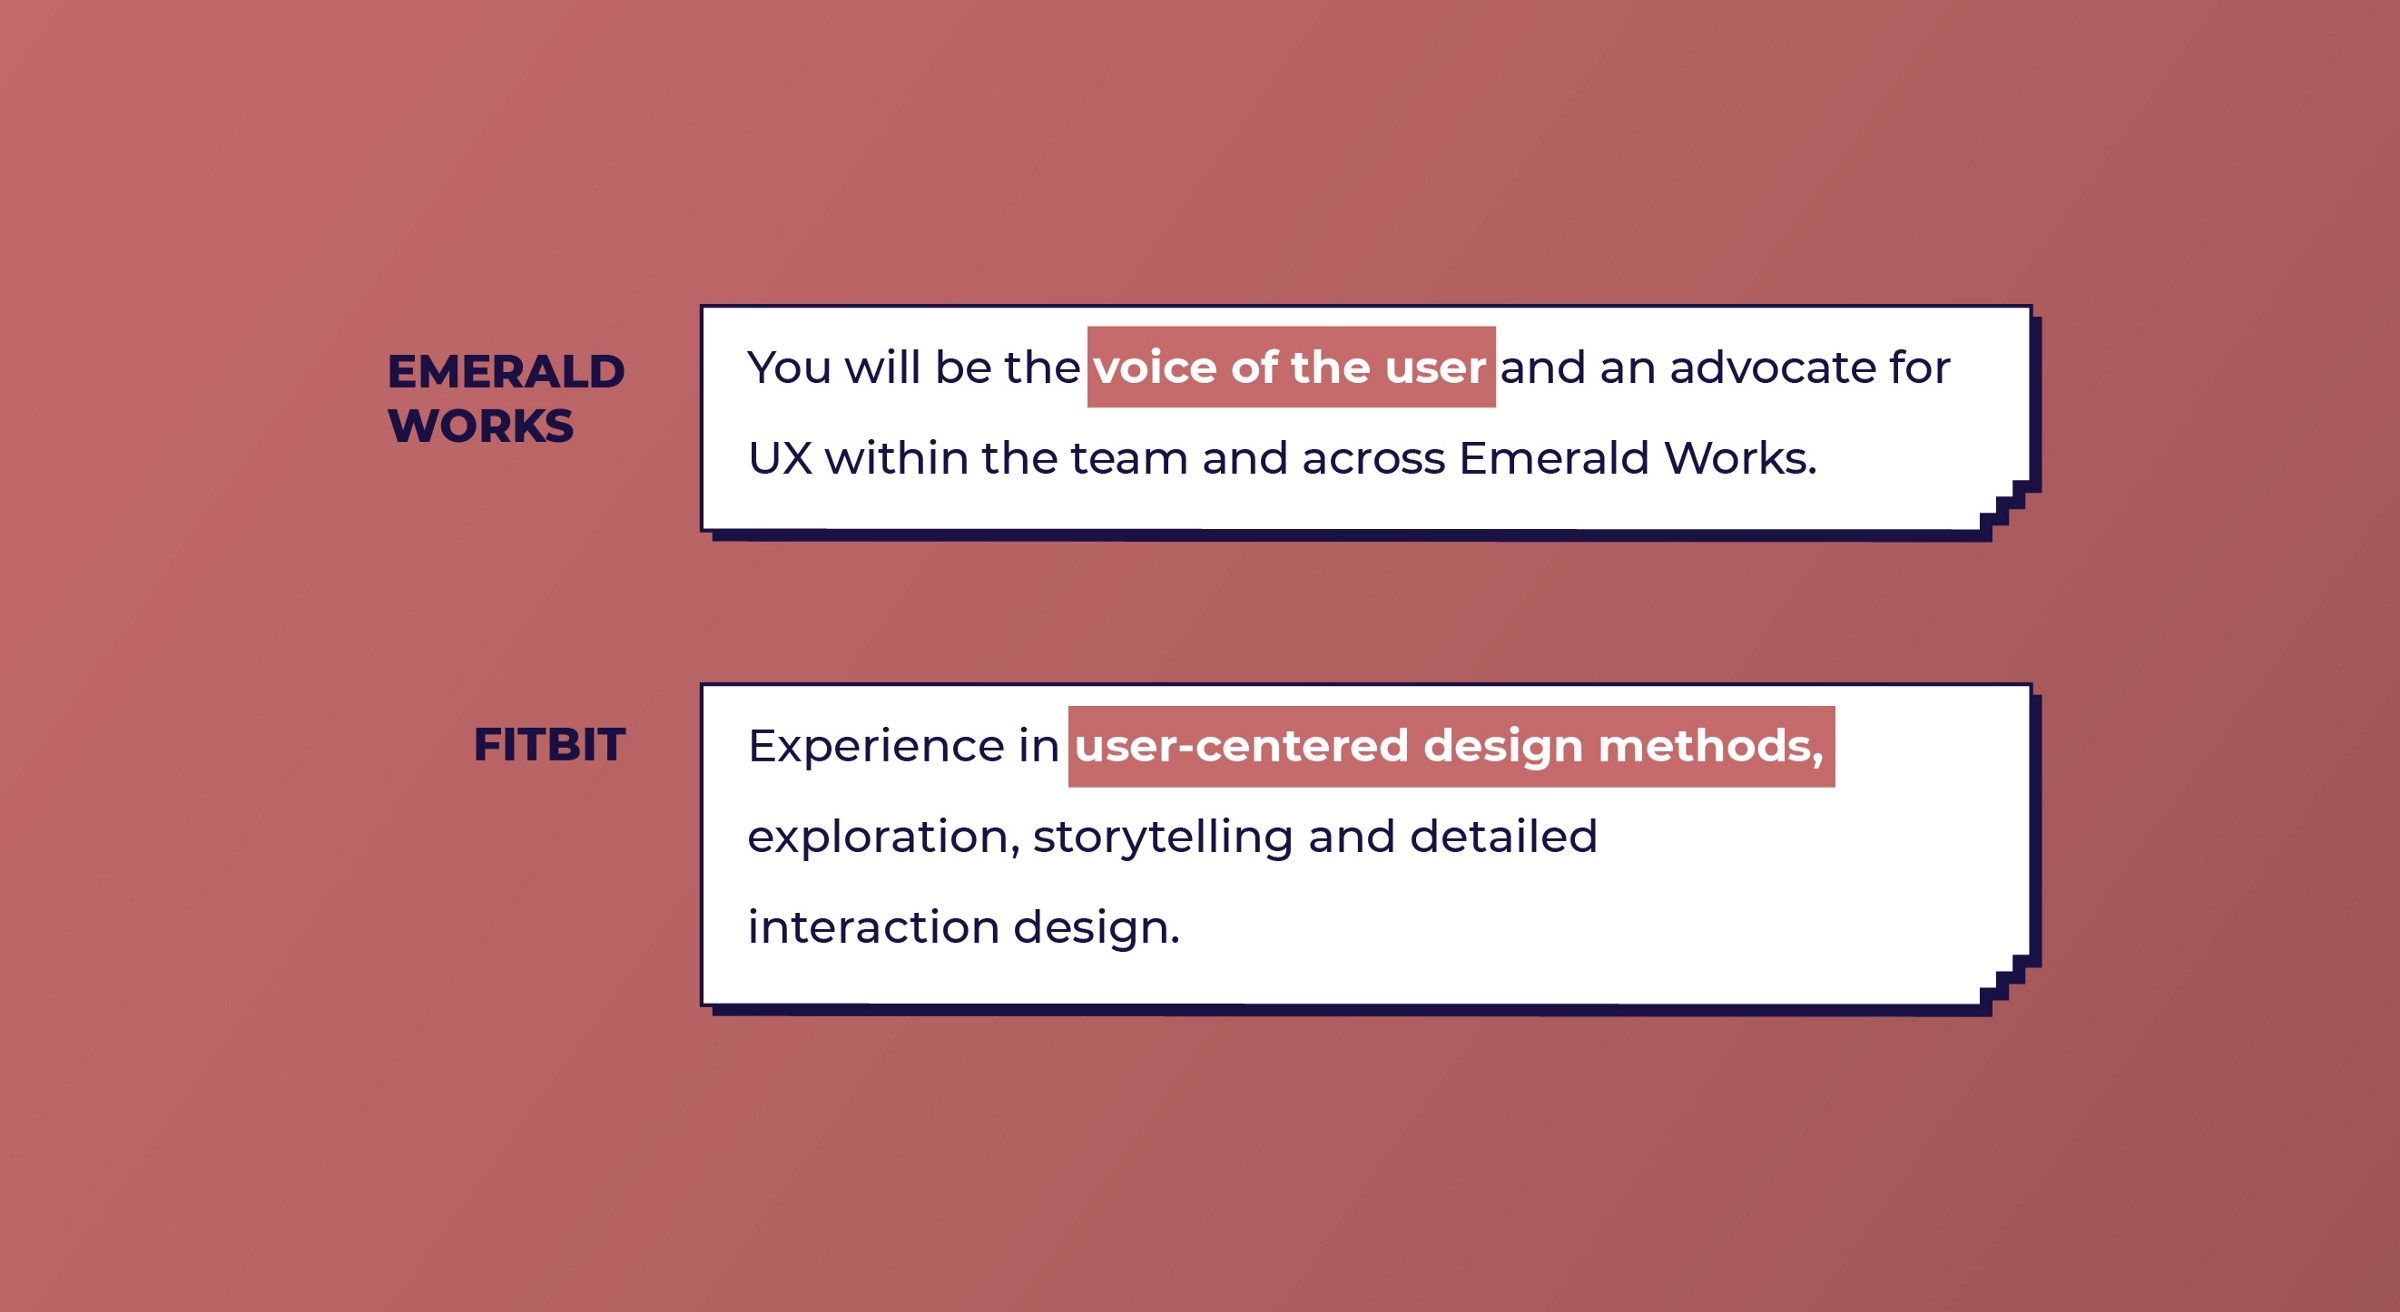 Emeral Works and Fitbit look for User-centered design skills from UX designers